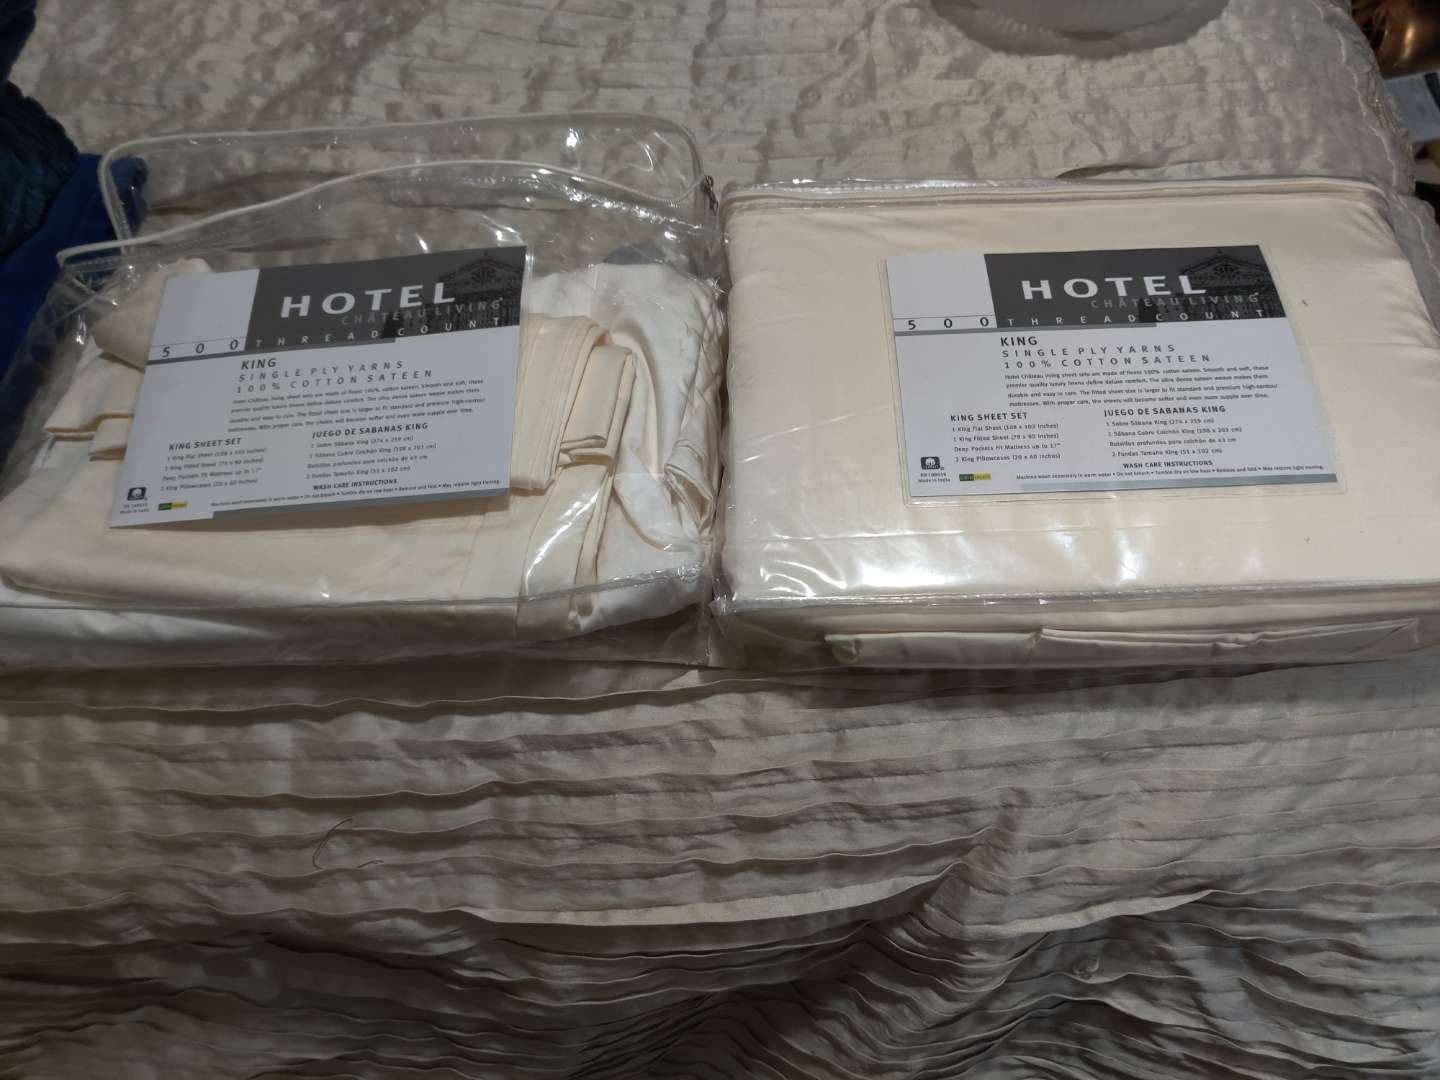 83 new complete king size sheet set and a partial king size set with one sheet and pillow cases